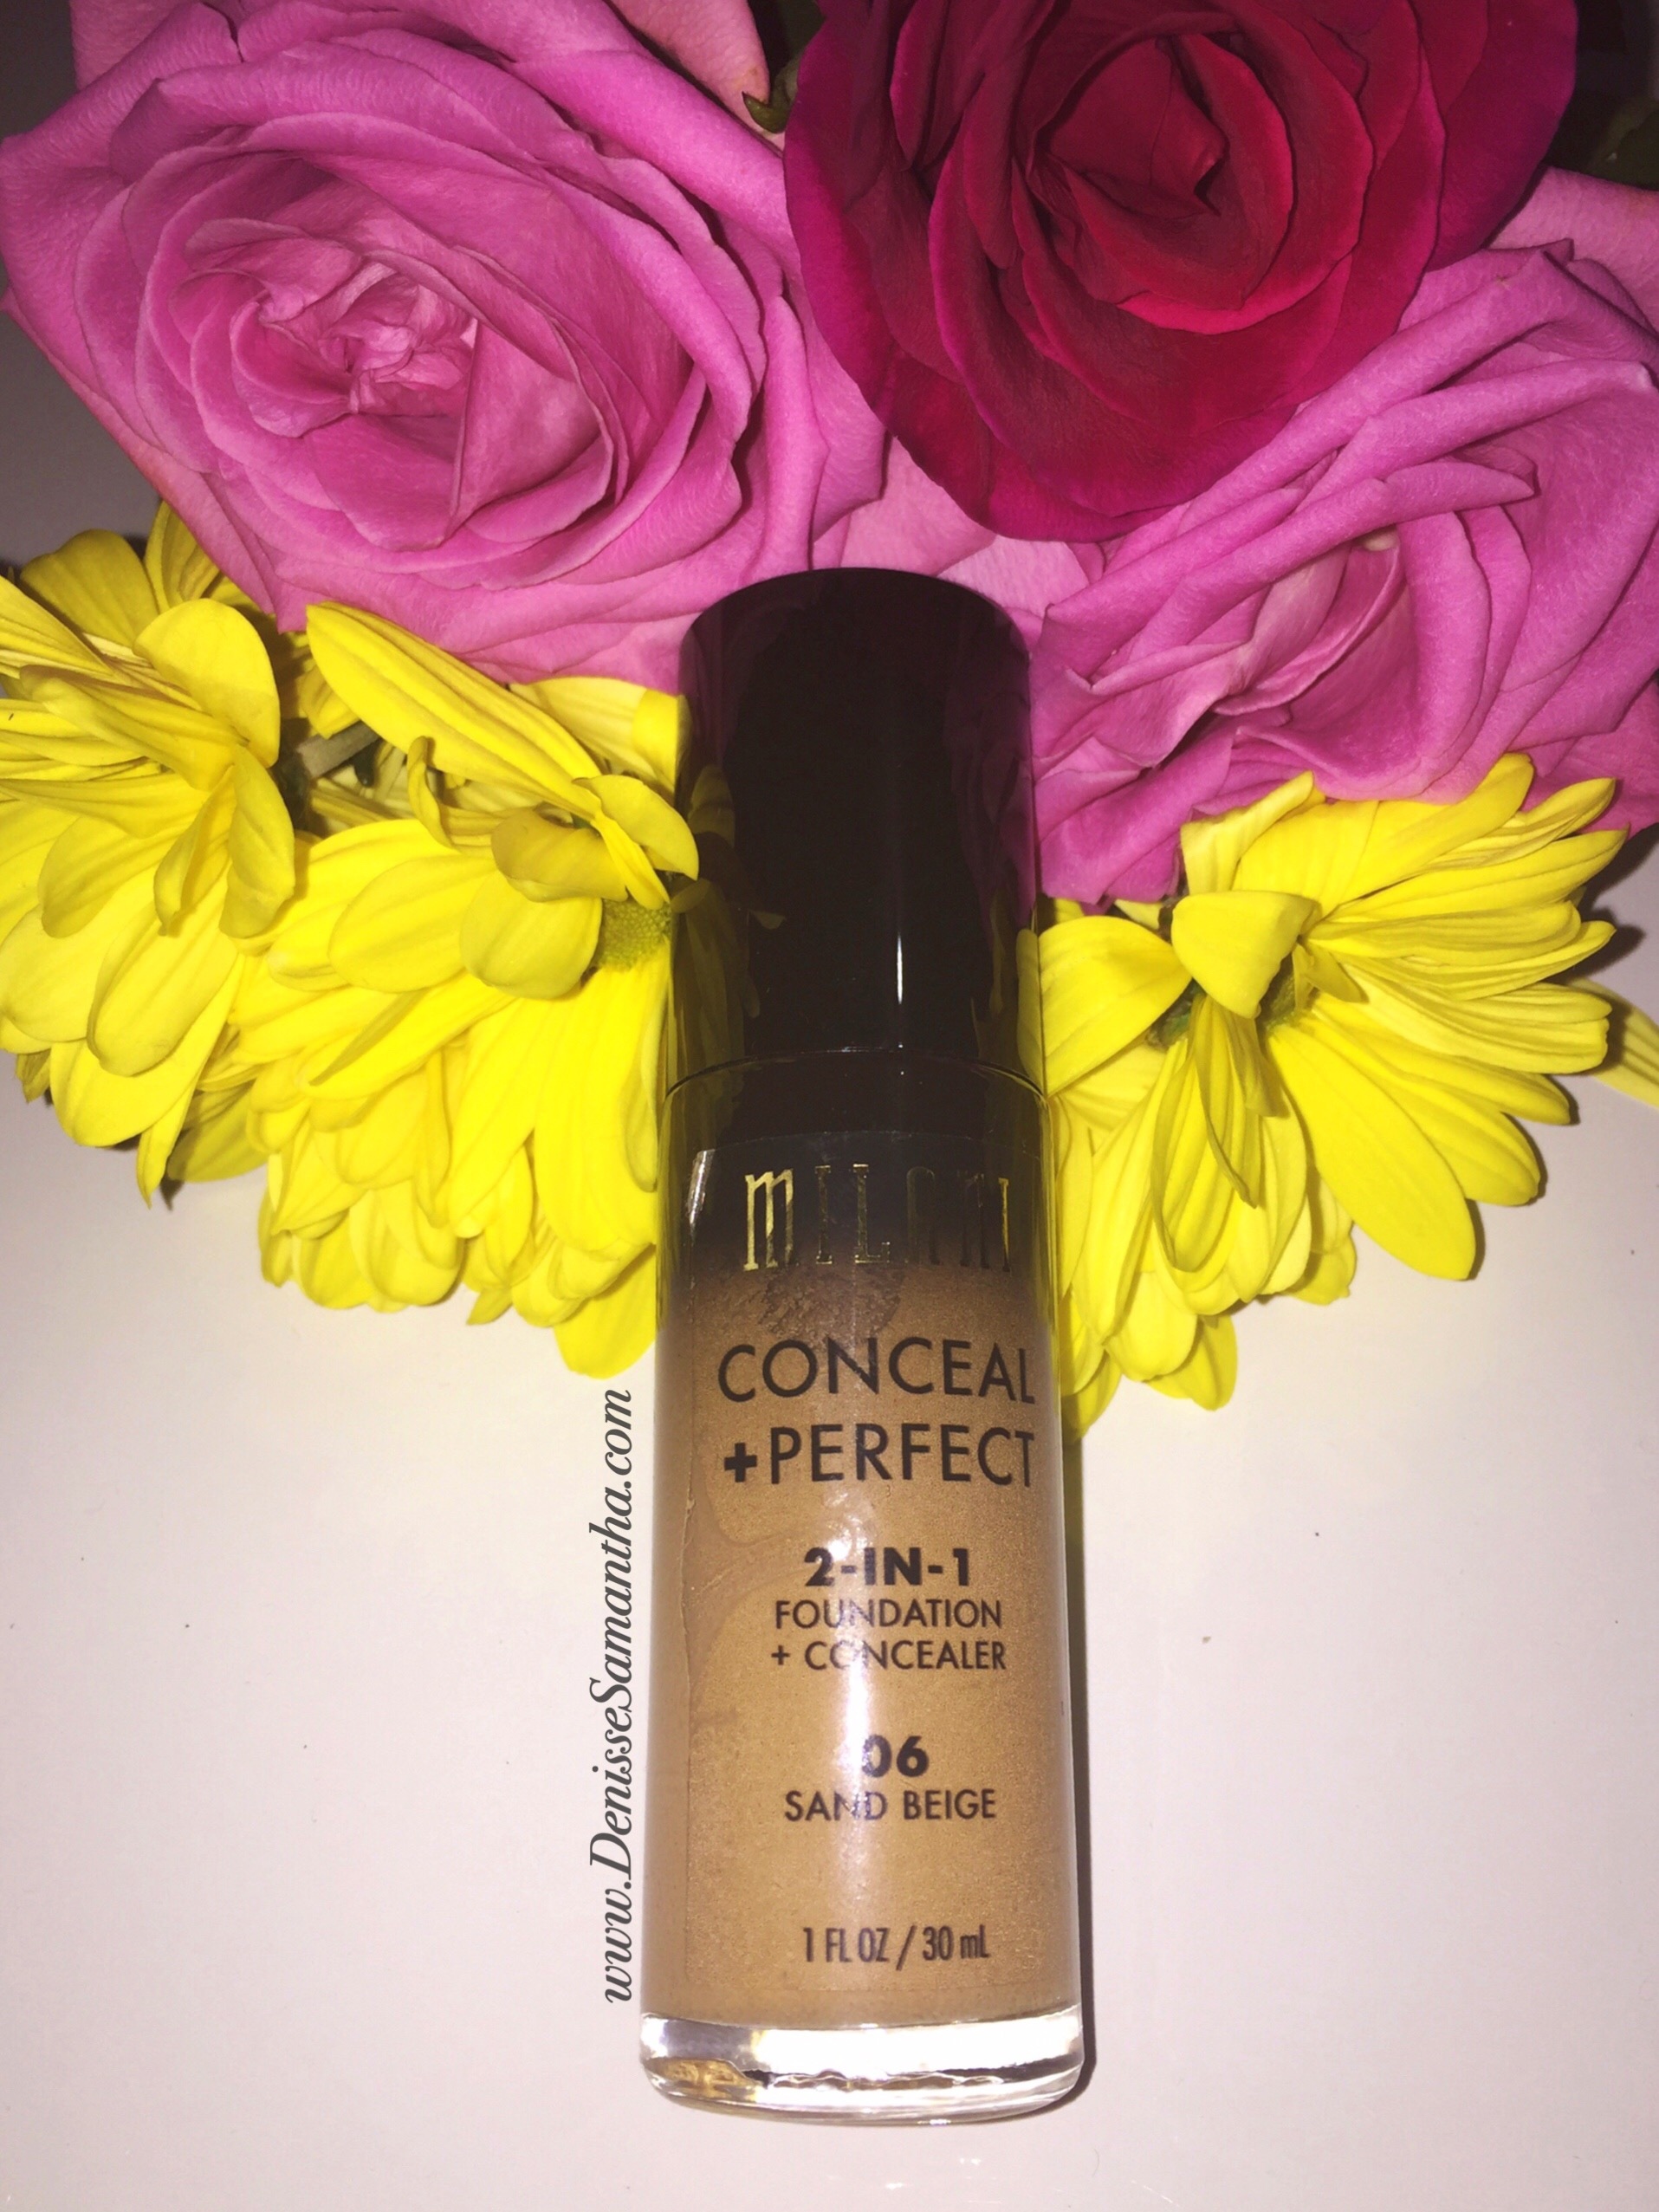 Milani Conceal and Perfect 2-in-1 Foundation and Concealer Review